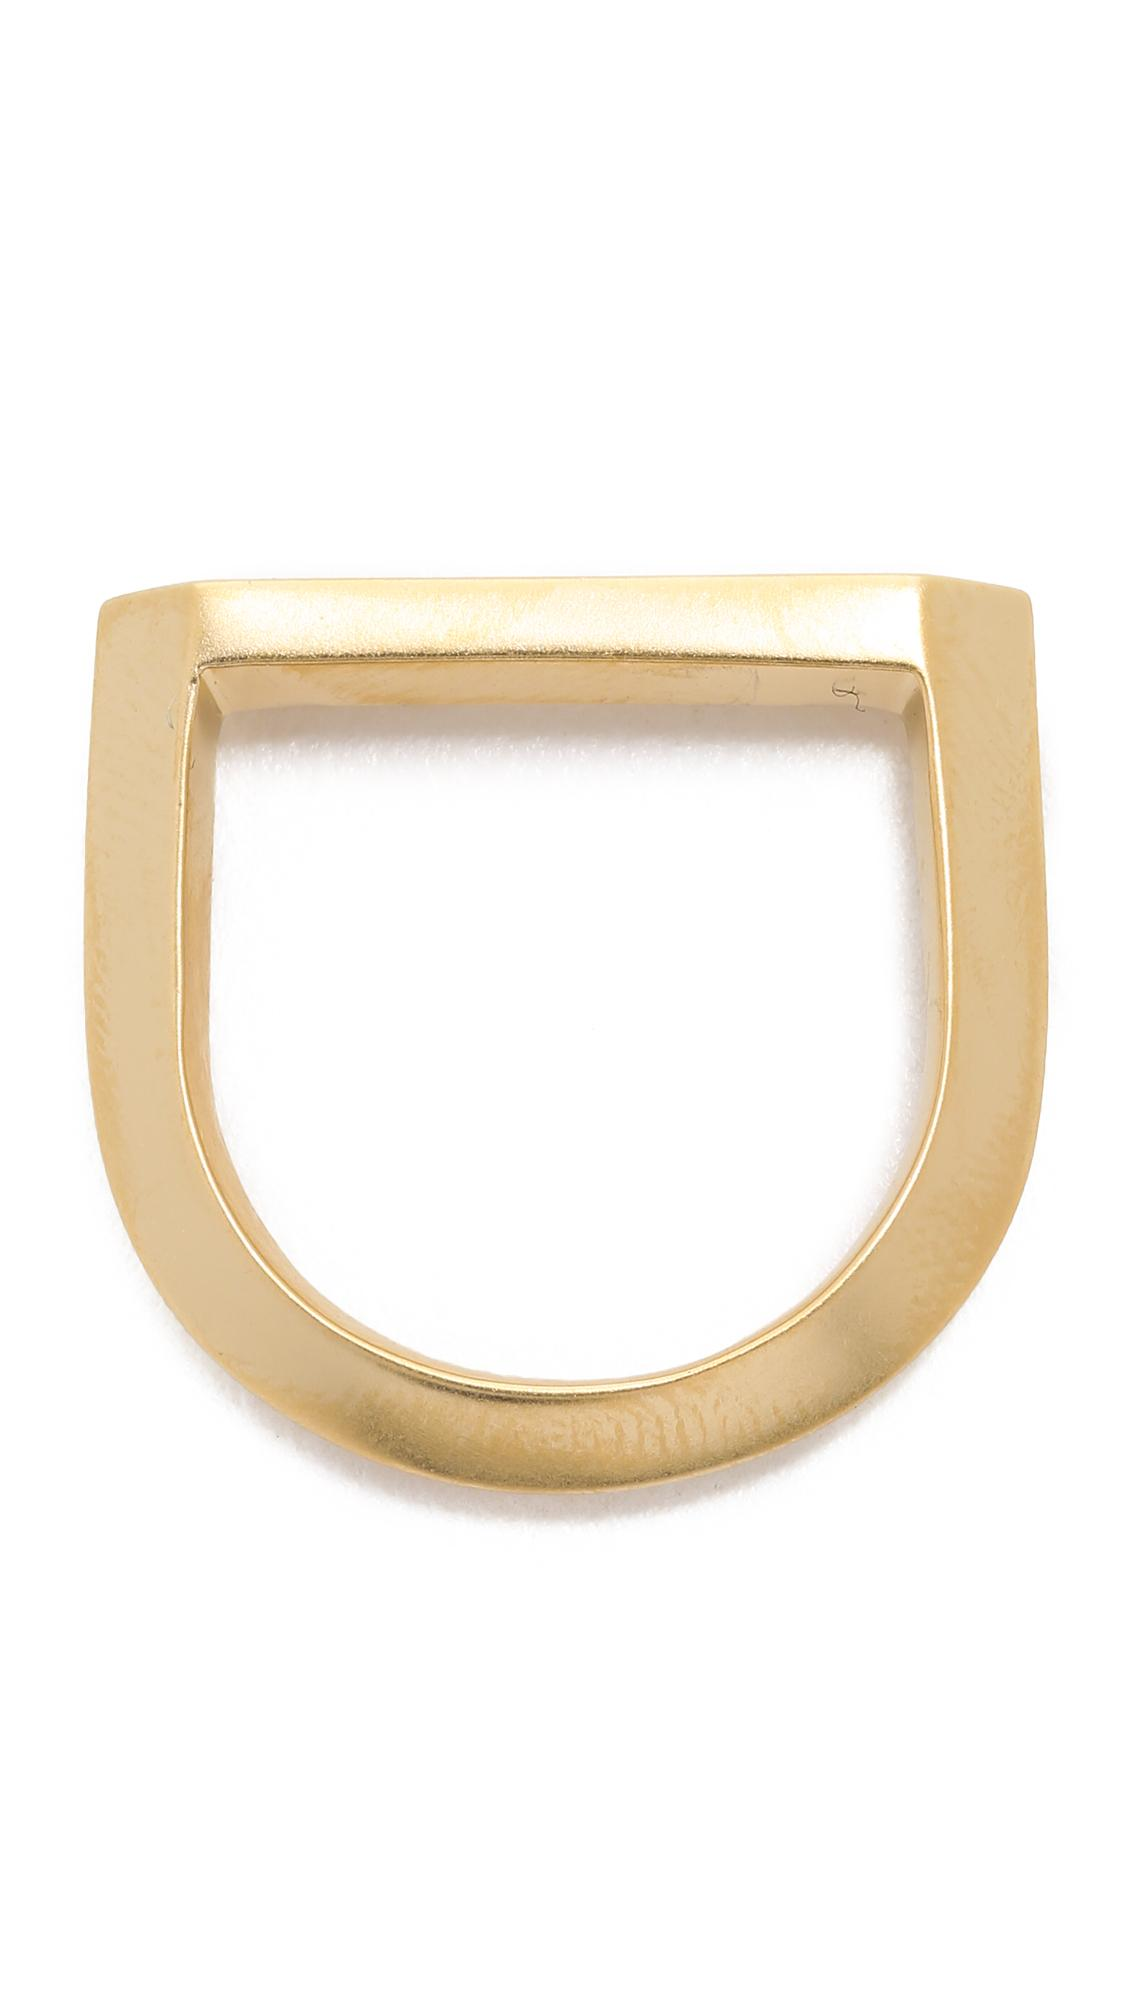 Miansai Flat Top Ring in Brushed Gold (Metallic) for Men